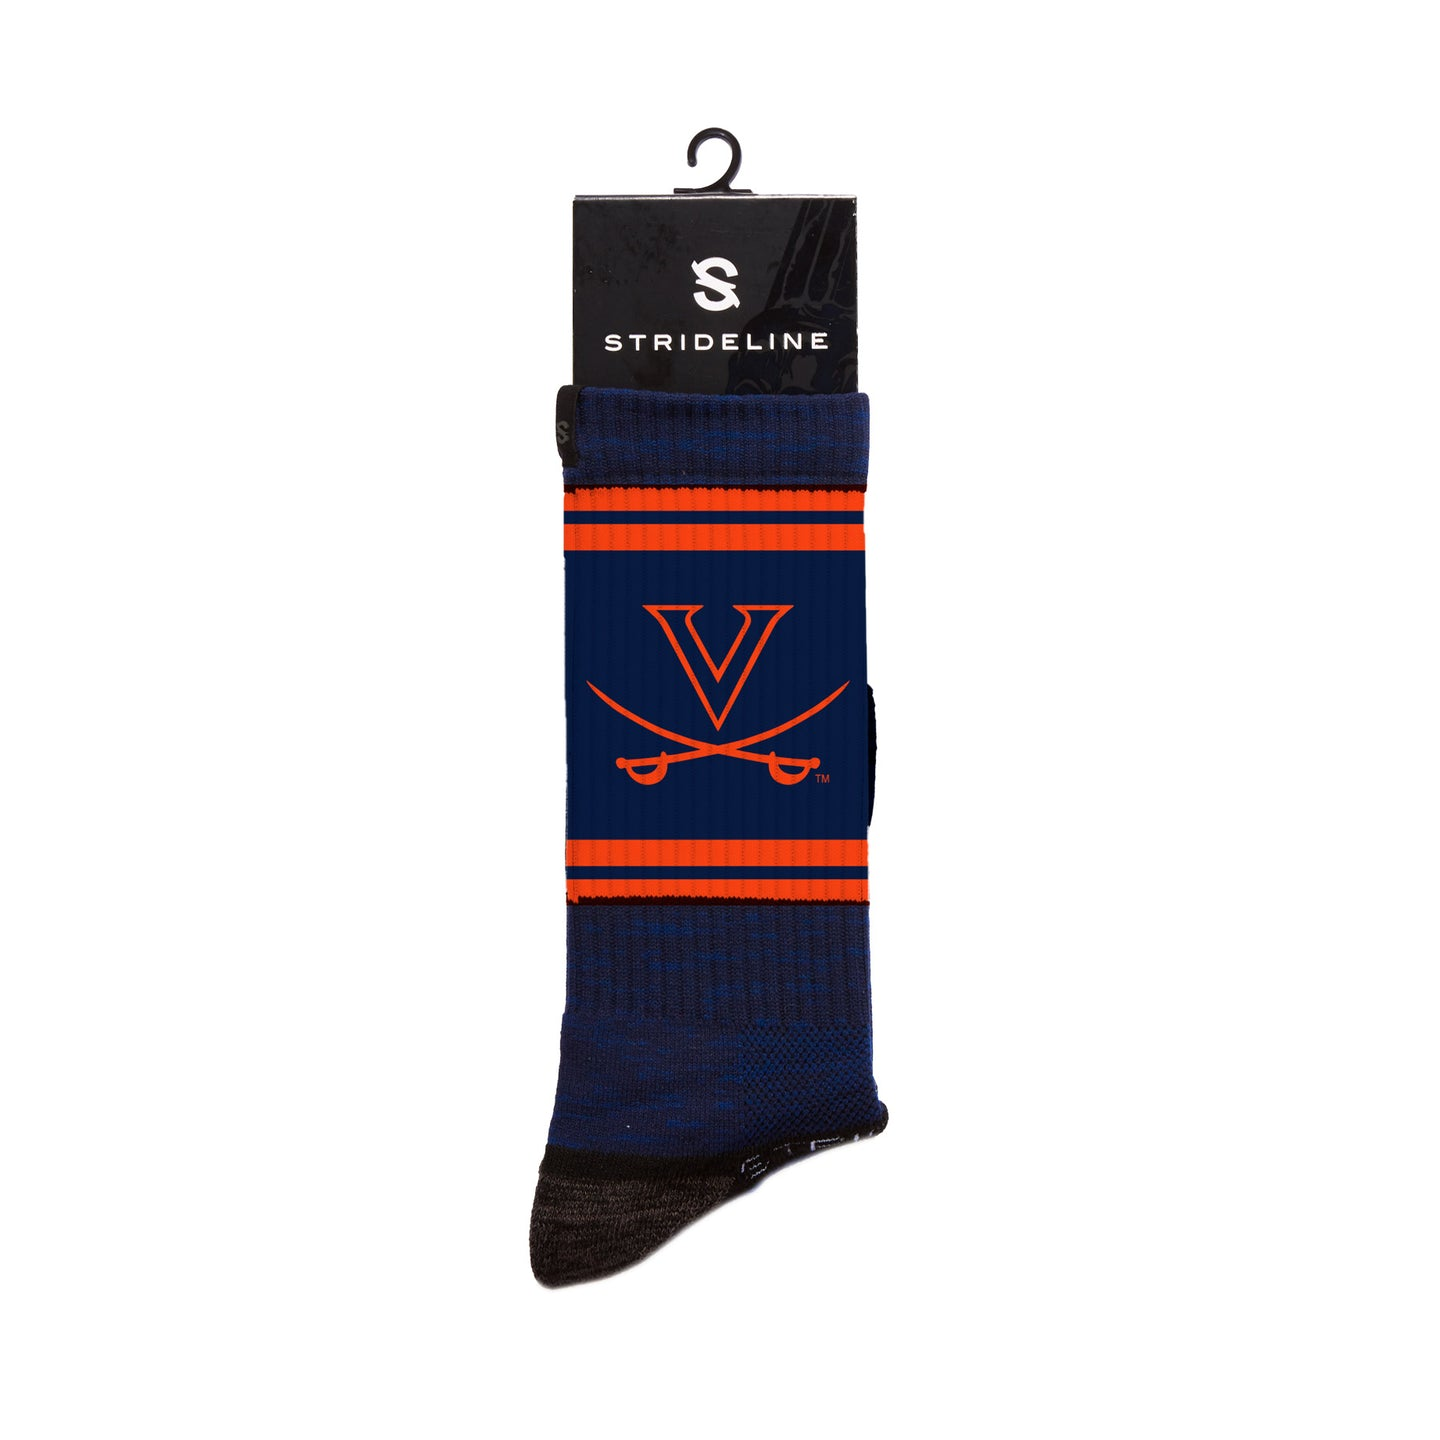 Virginia Cavaliers Navy Crew Socks